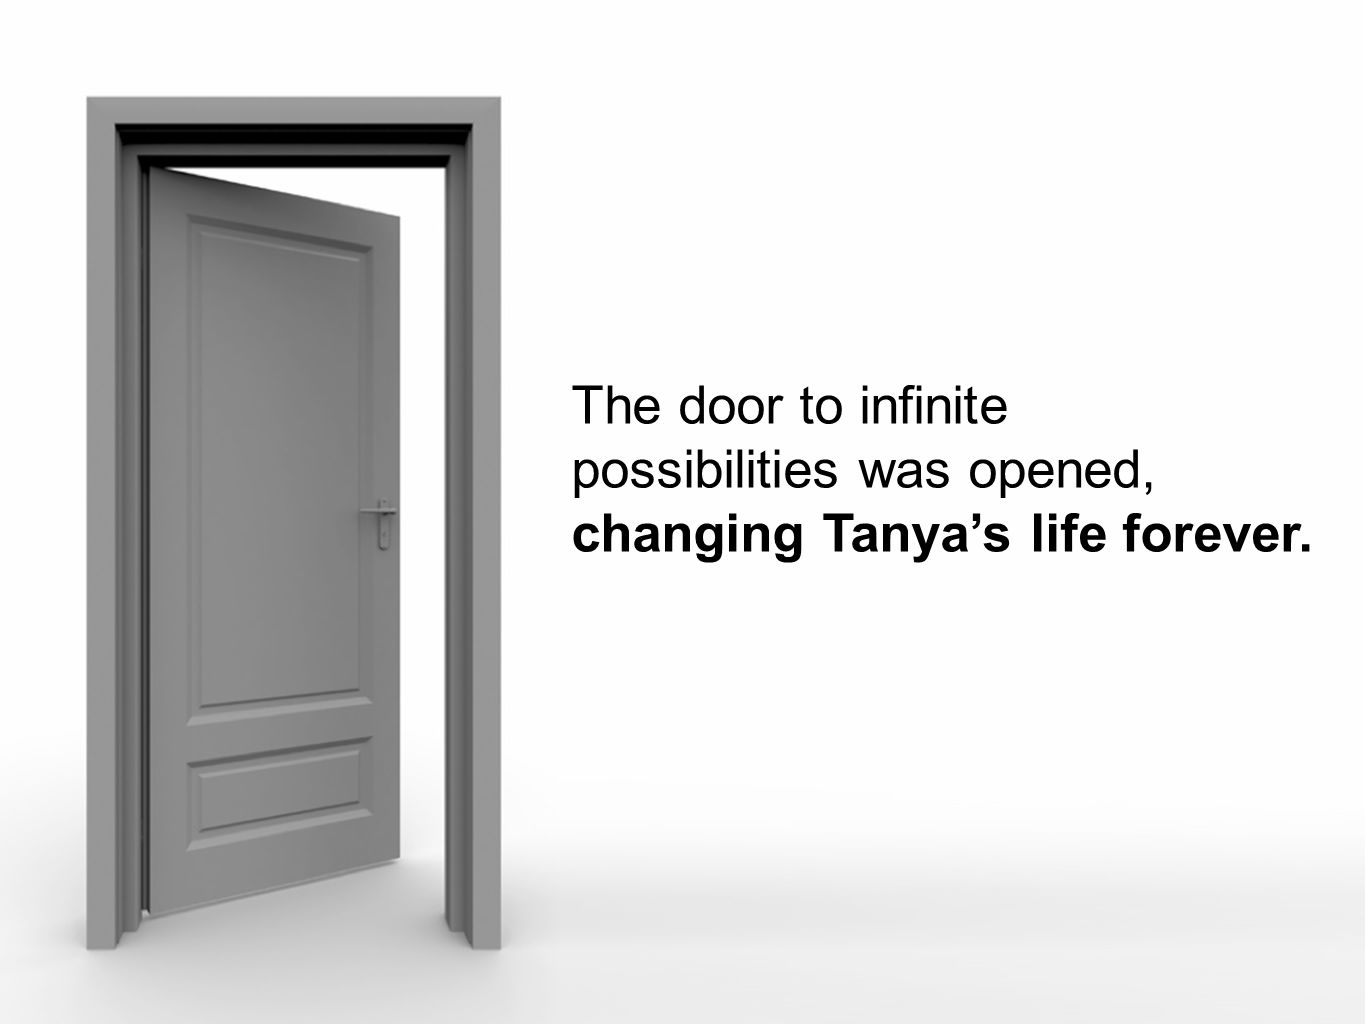 © The National Foundation for Teaching Entrepreneurship (www.nfte.com)www.nfte.com The door to infinite possibilities was opened, changing Tanya's life forever.